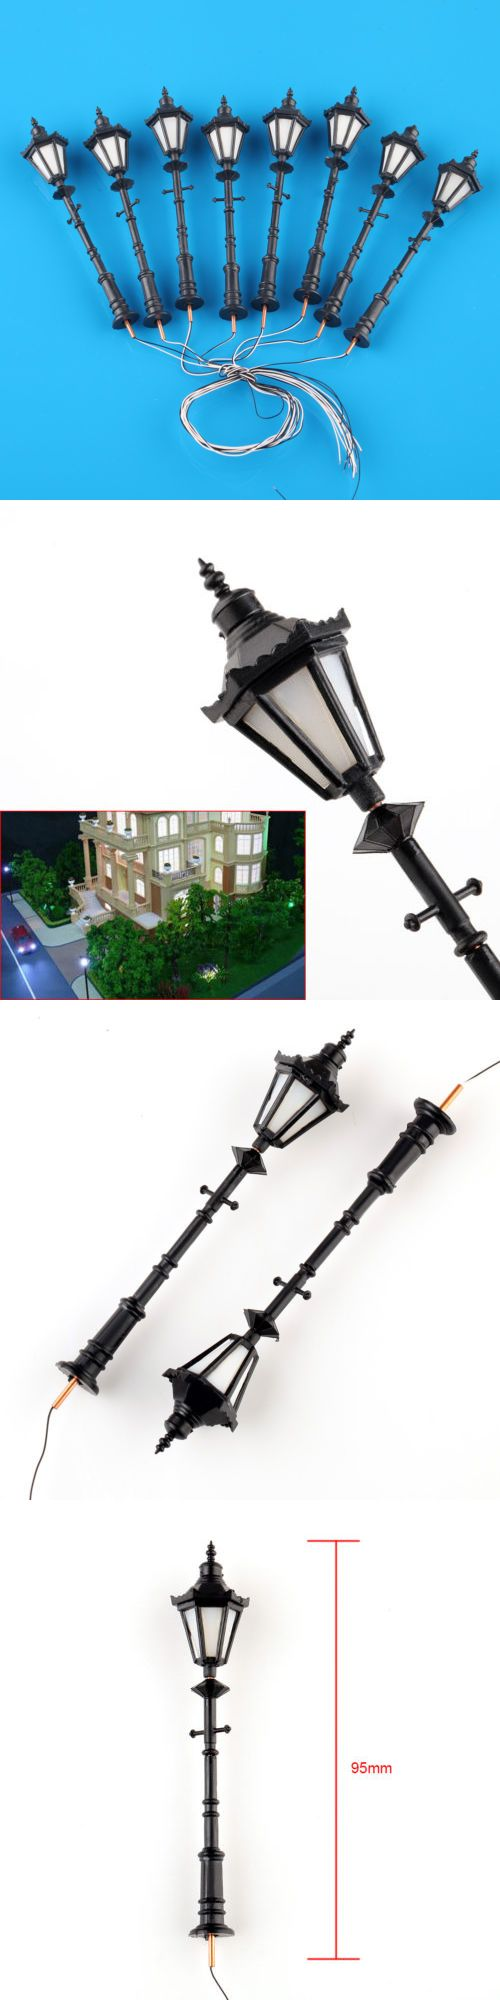 Lamps and lights 80984 8pcs model railway led lamppost lamps g scale 125 antique street lights buy it now only 12 99 on ebay lamps lights model